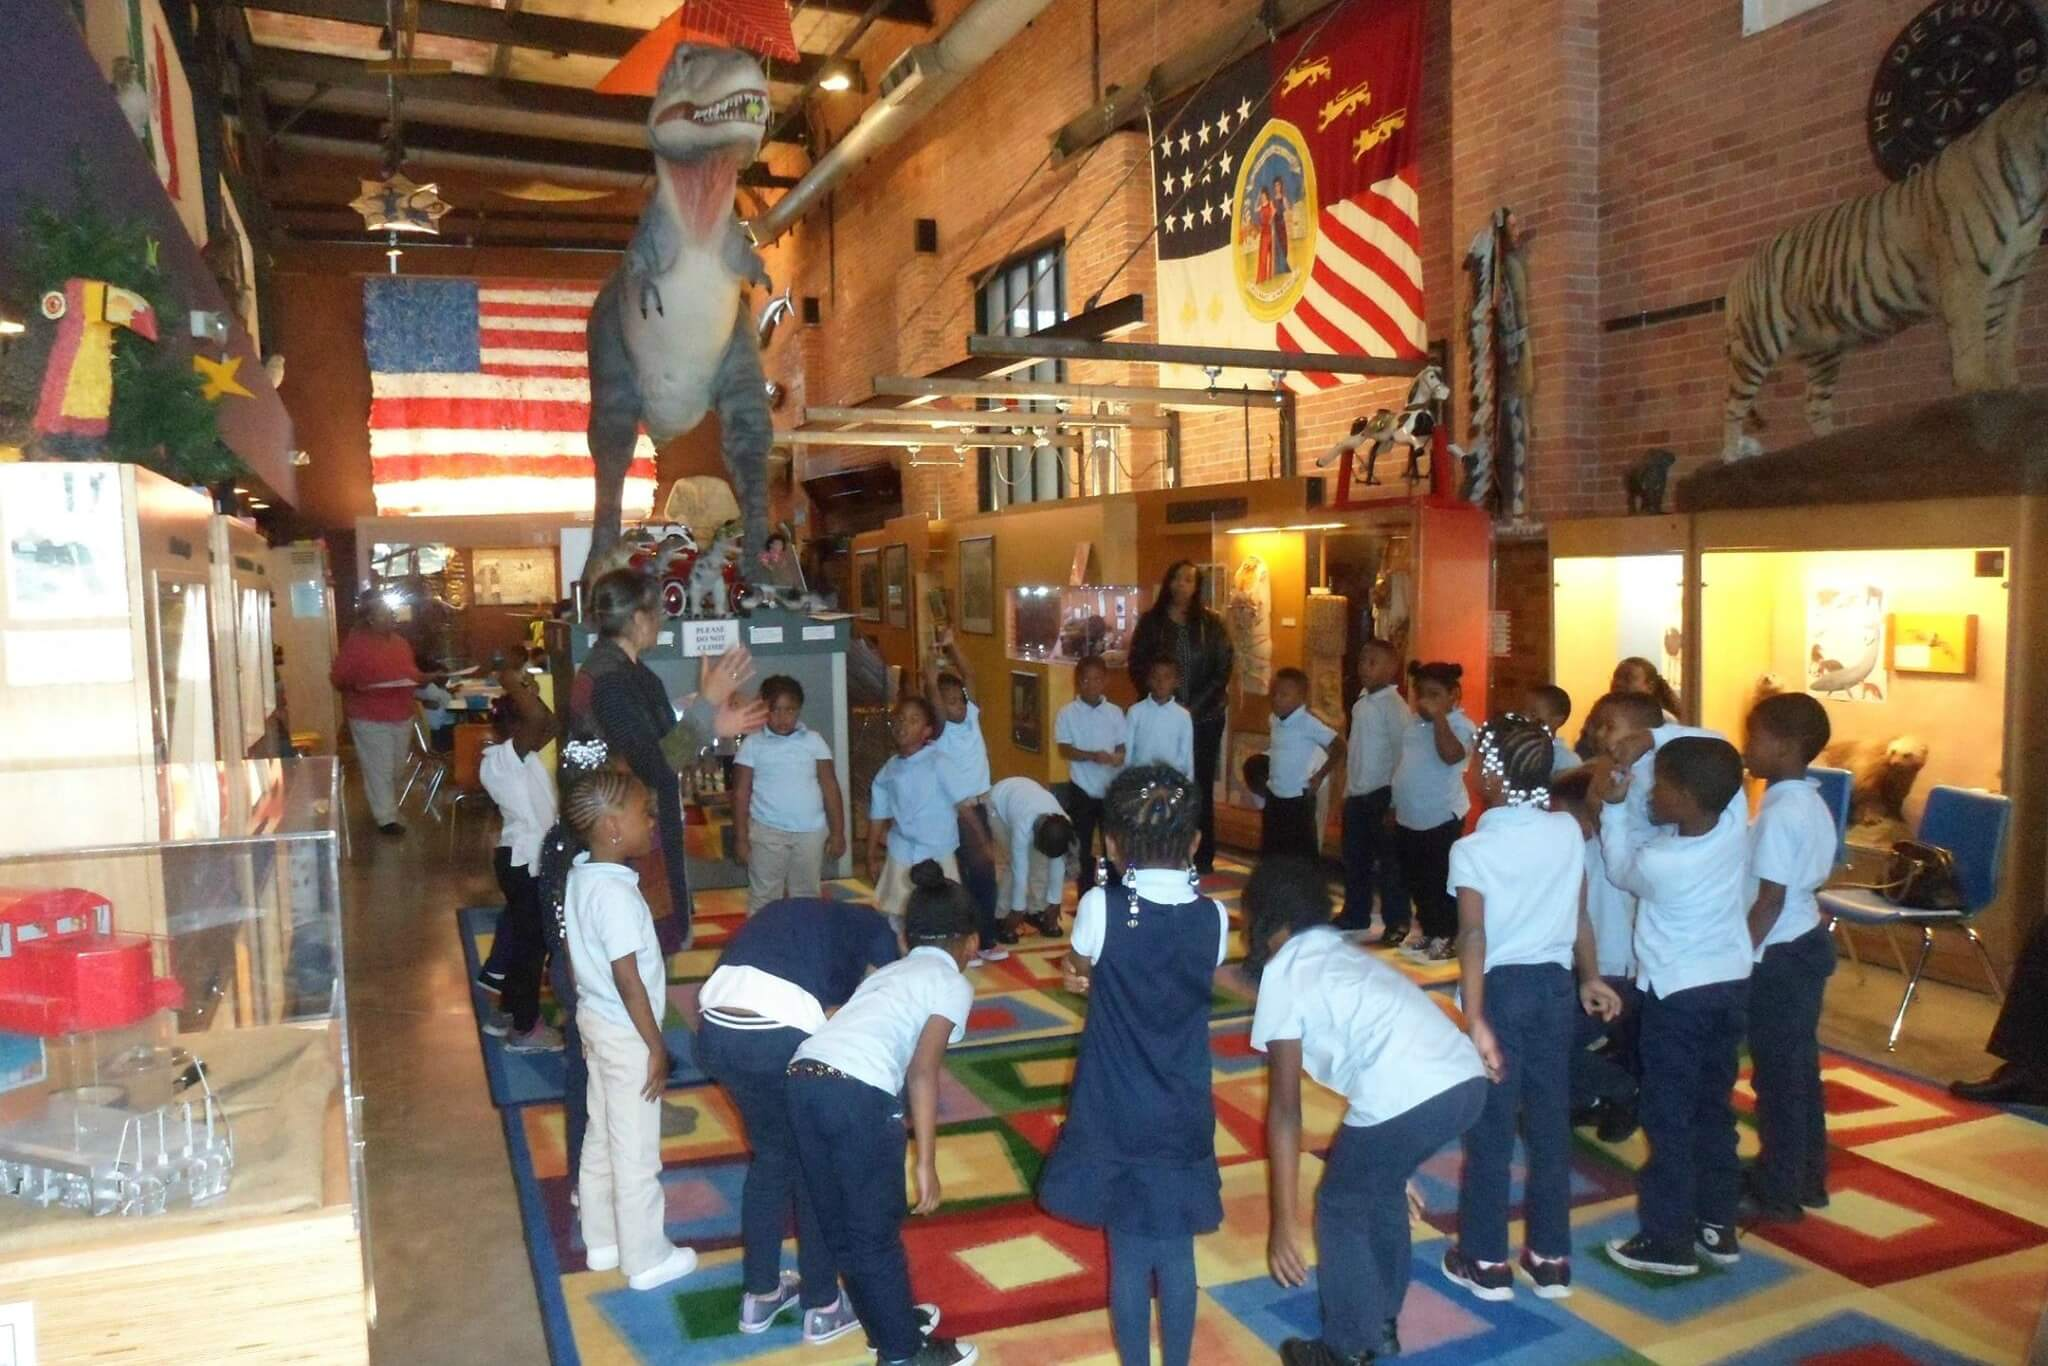 https://www.facebook.com/DetroitChildrensMuseum/photos/a.436029567333.235333.103065117333/10155824453632334/?type=3&theater